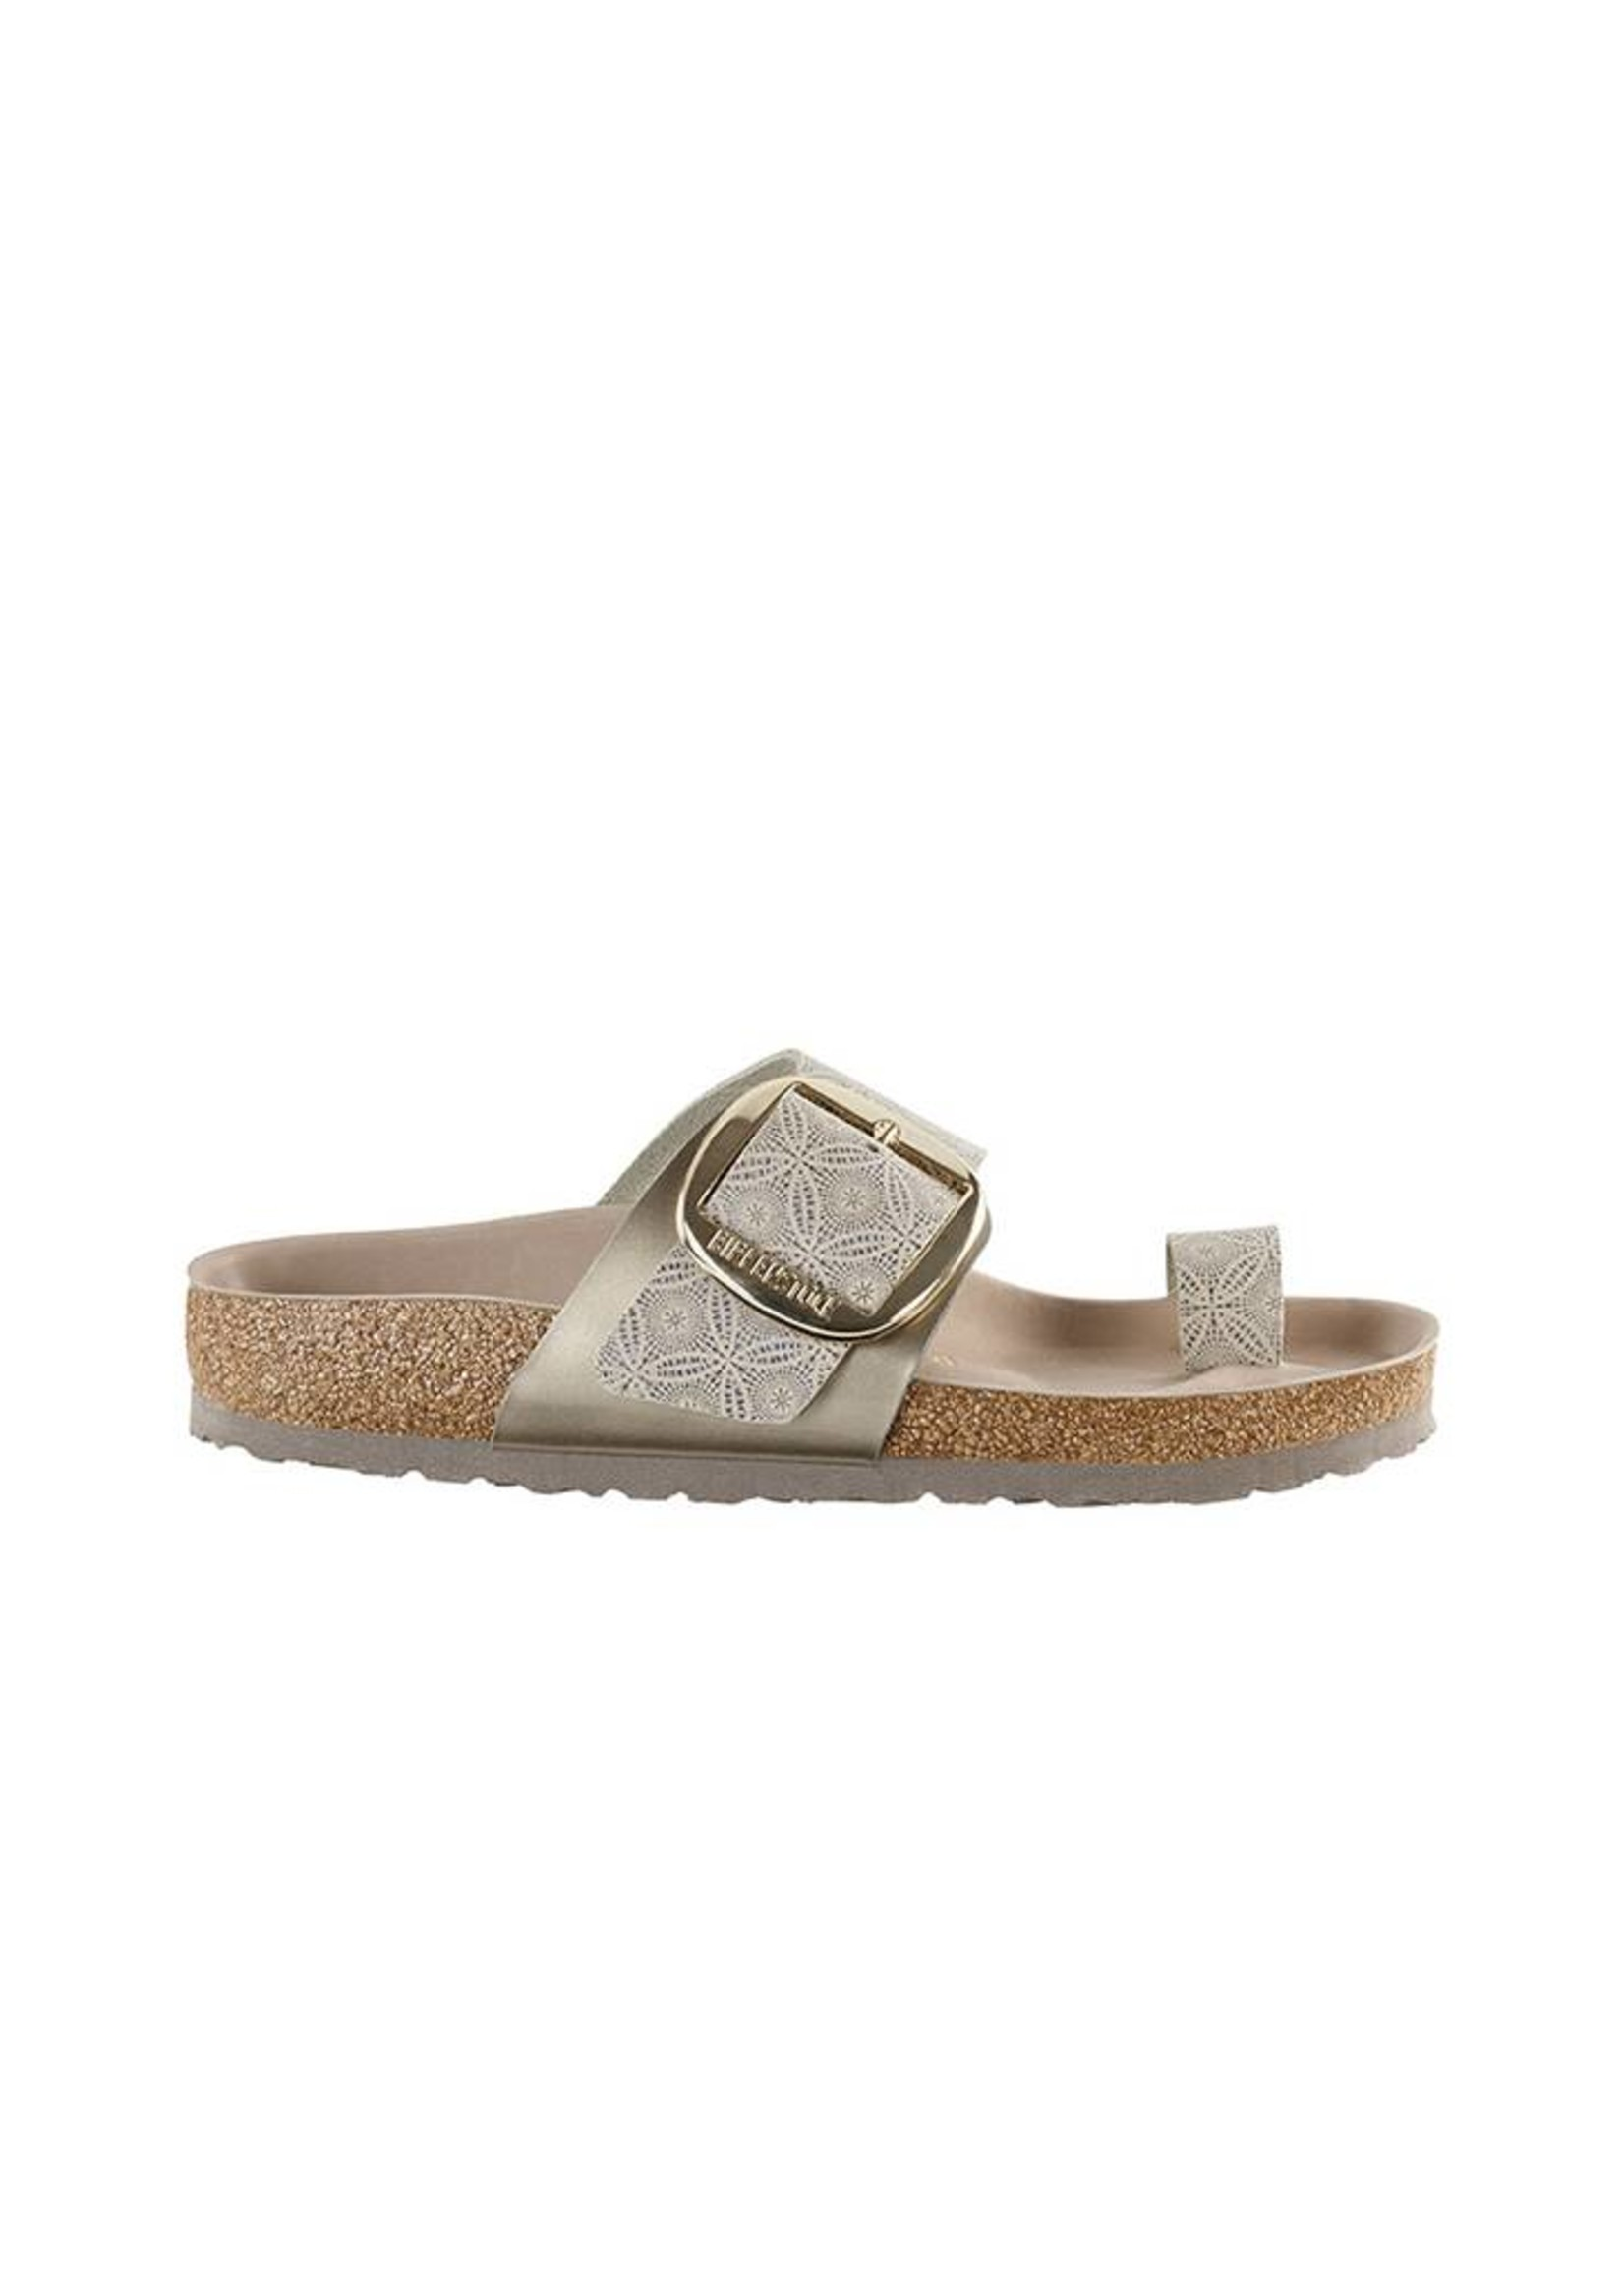 Birkenstock Miramar Big Buckle -  Natural Leather in Ceramic Pattern Blue (Premium Leather Footbed)